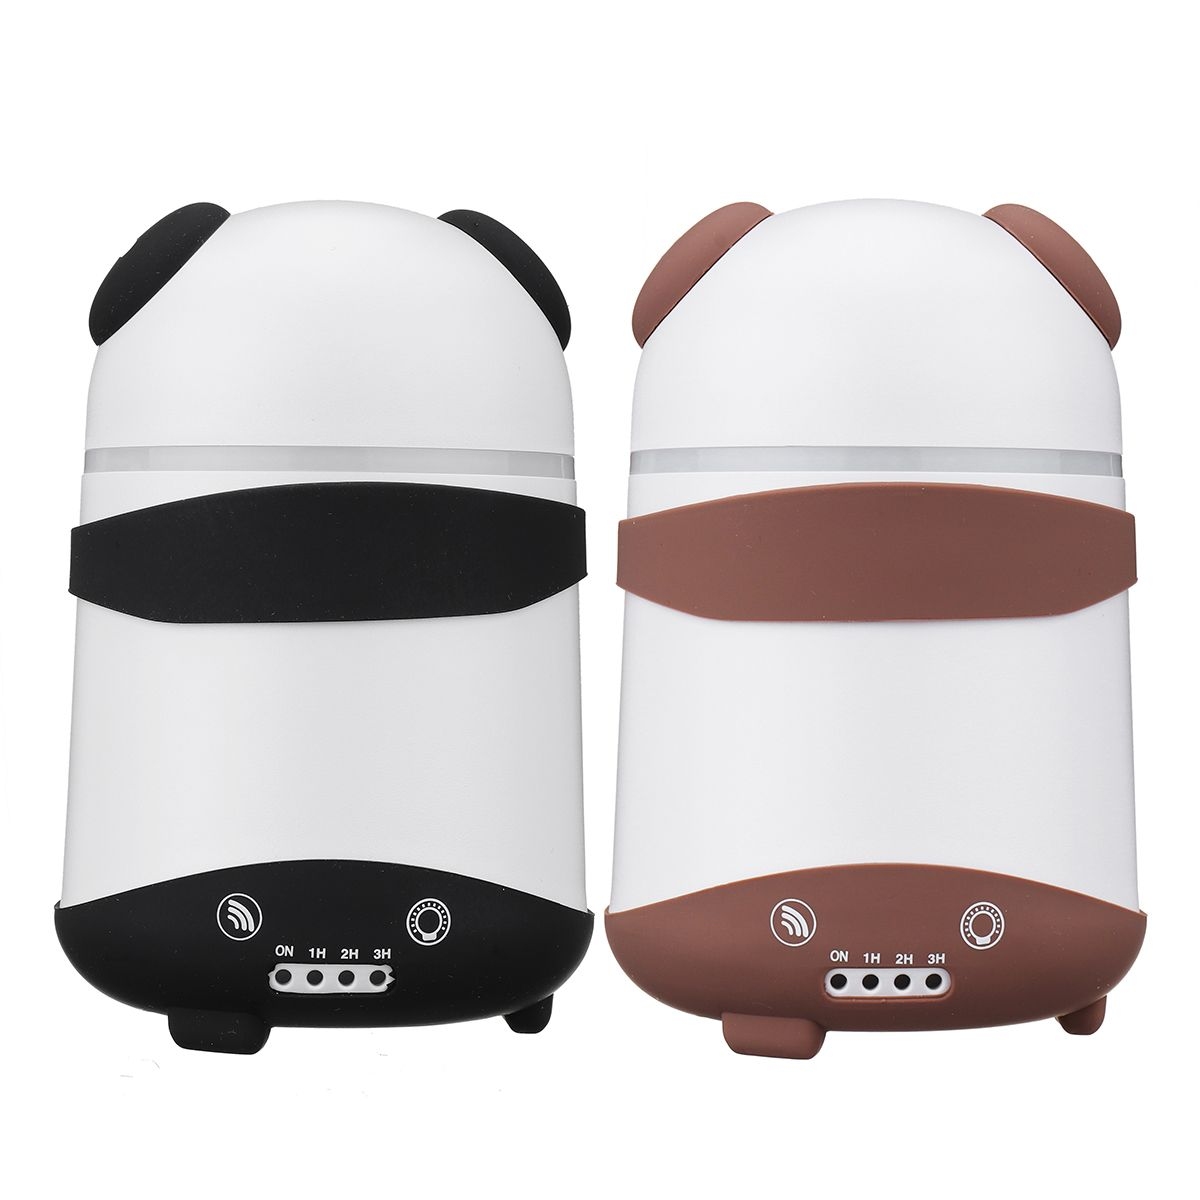 Dual Humidifier Air Oil Diffuser Aroma Mist Maker LED